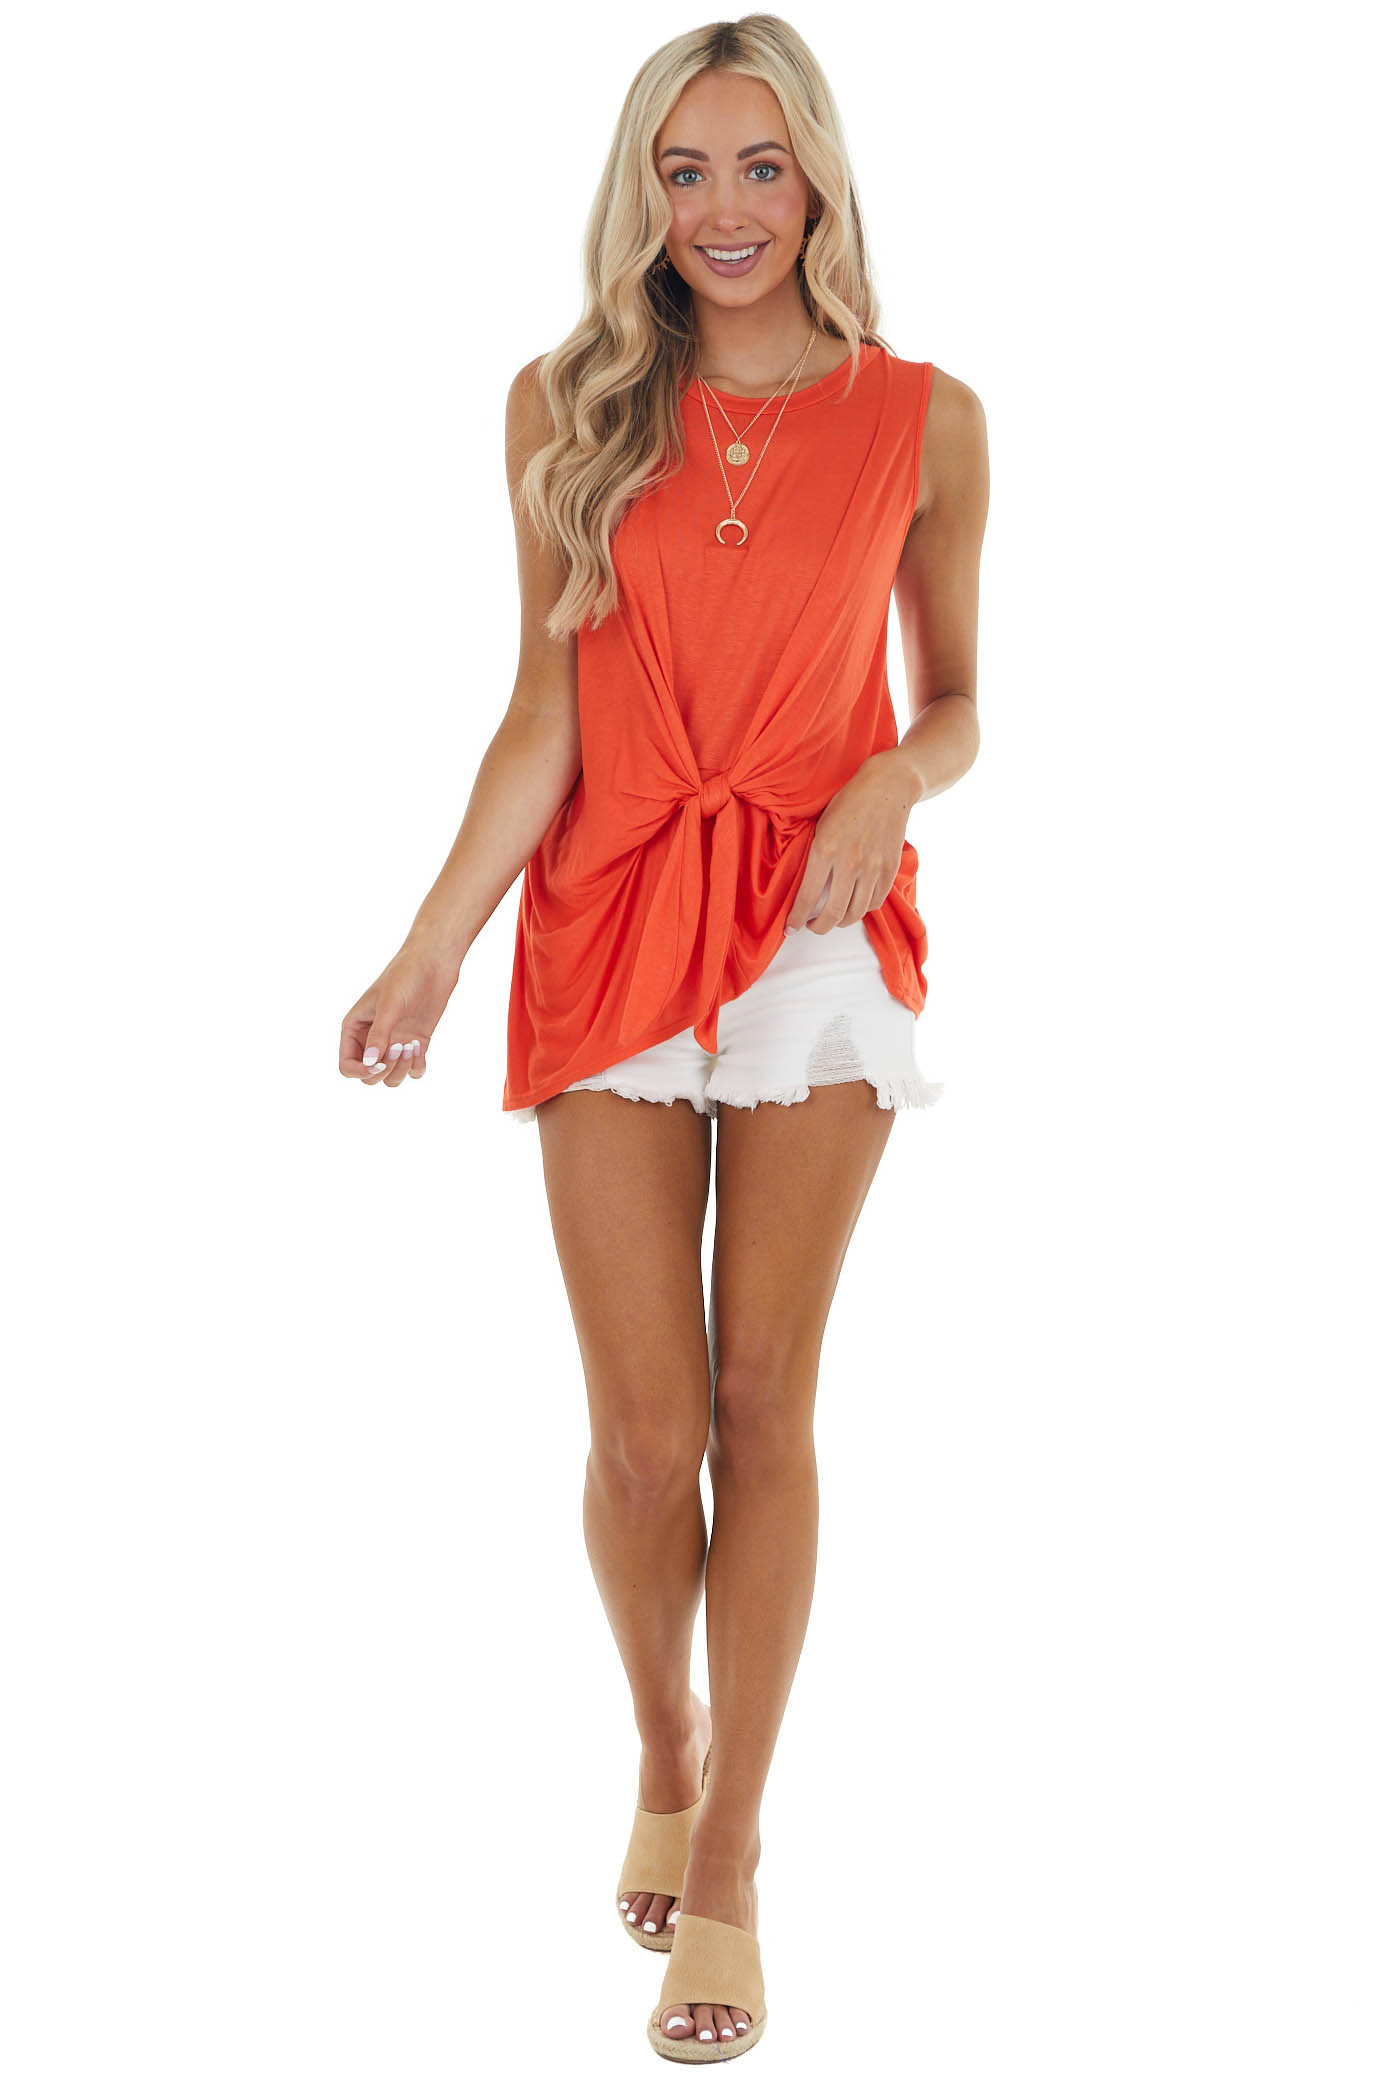 Neon Orange Sleeveless Knit Top with Front Tie Detail